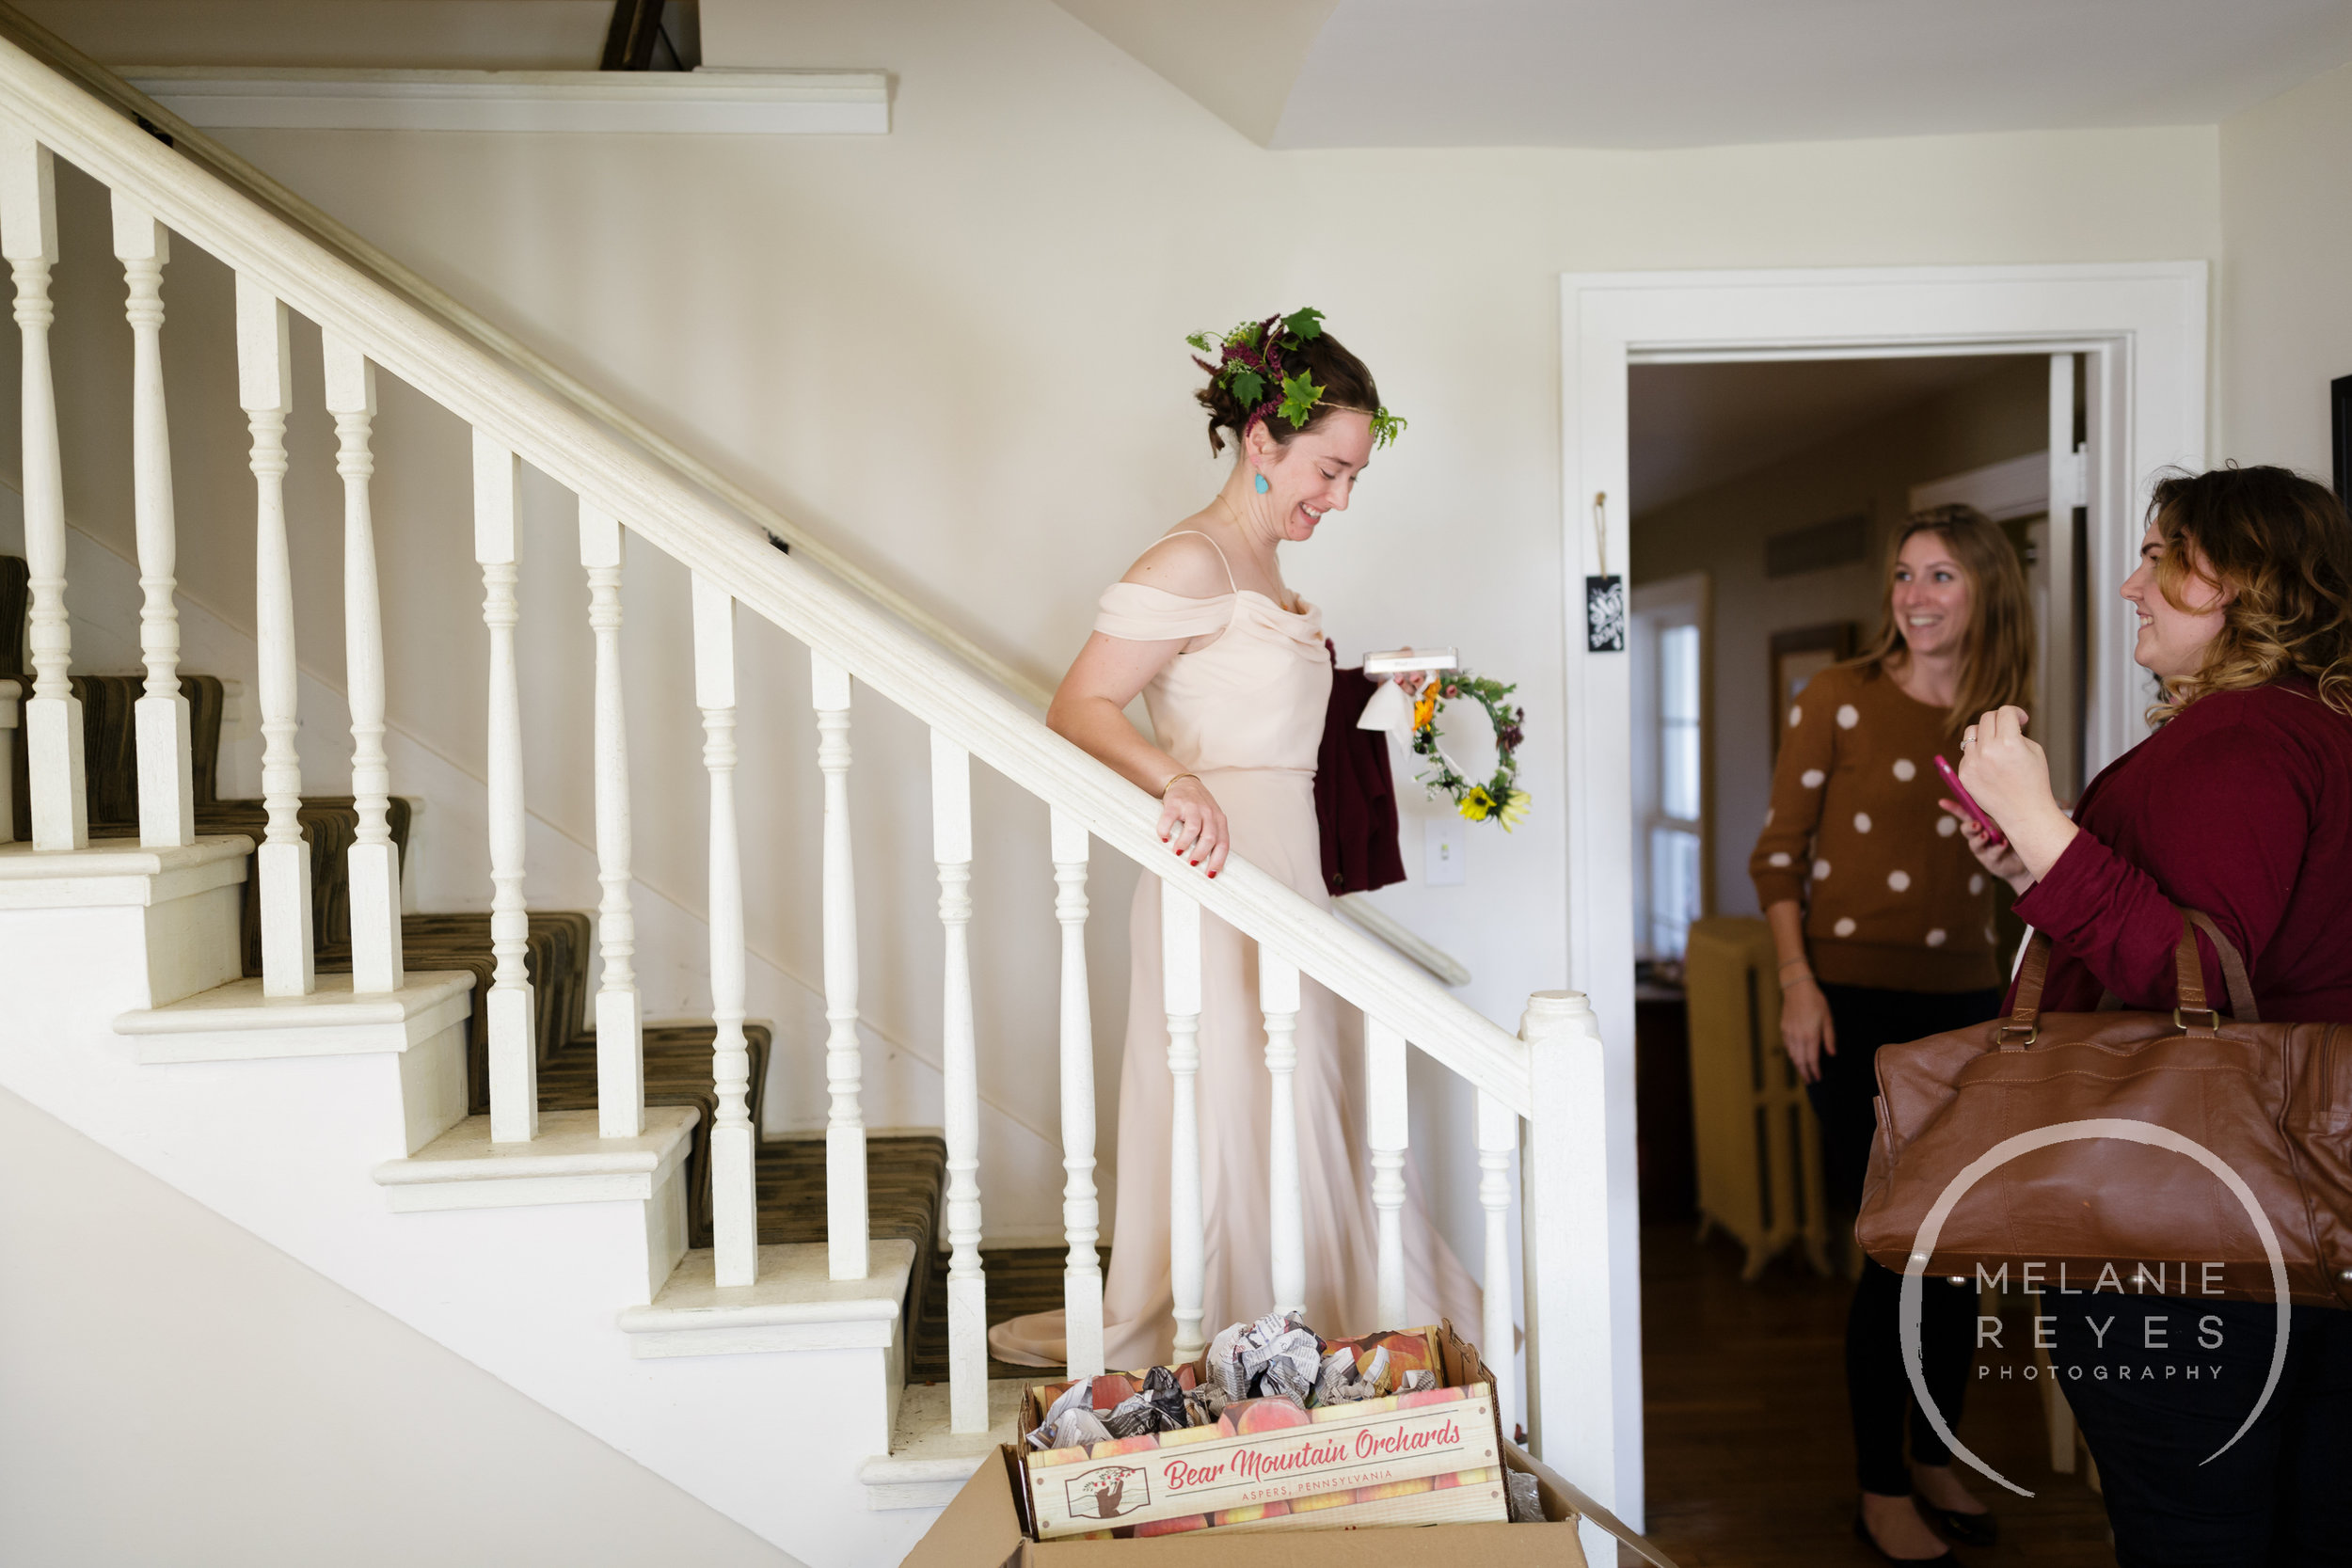 zingermans_cornman_farms_wedding_melanie_reyes_photography_004.JPG